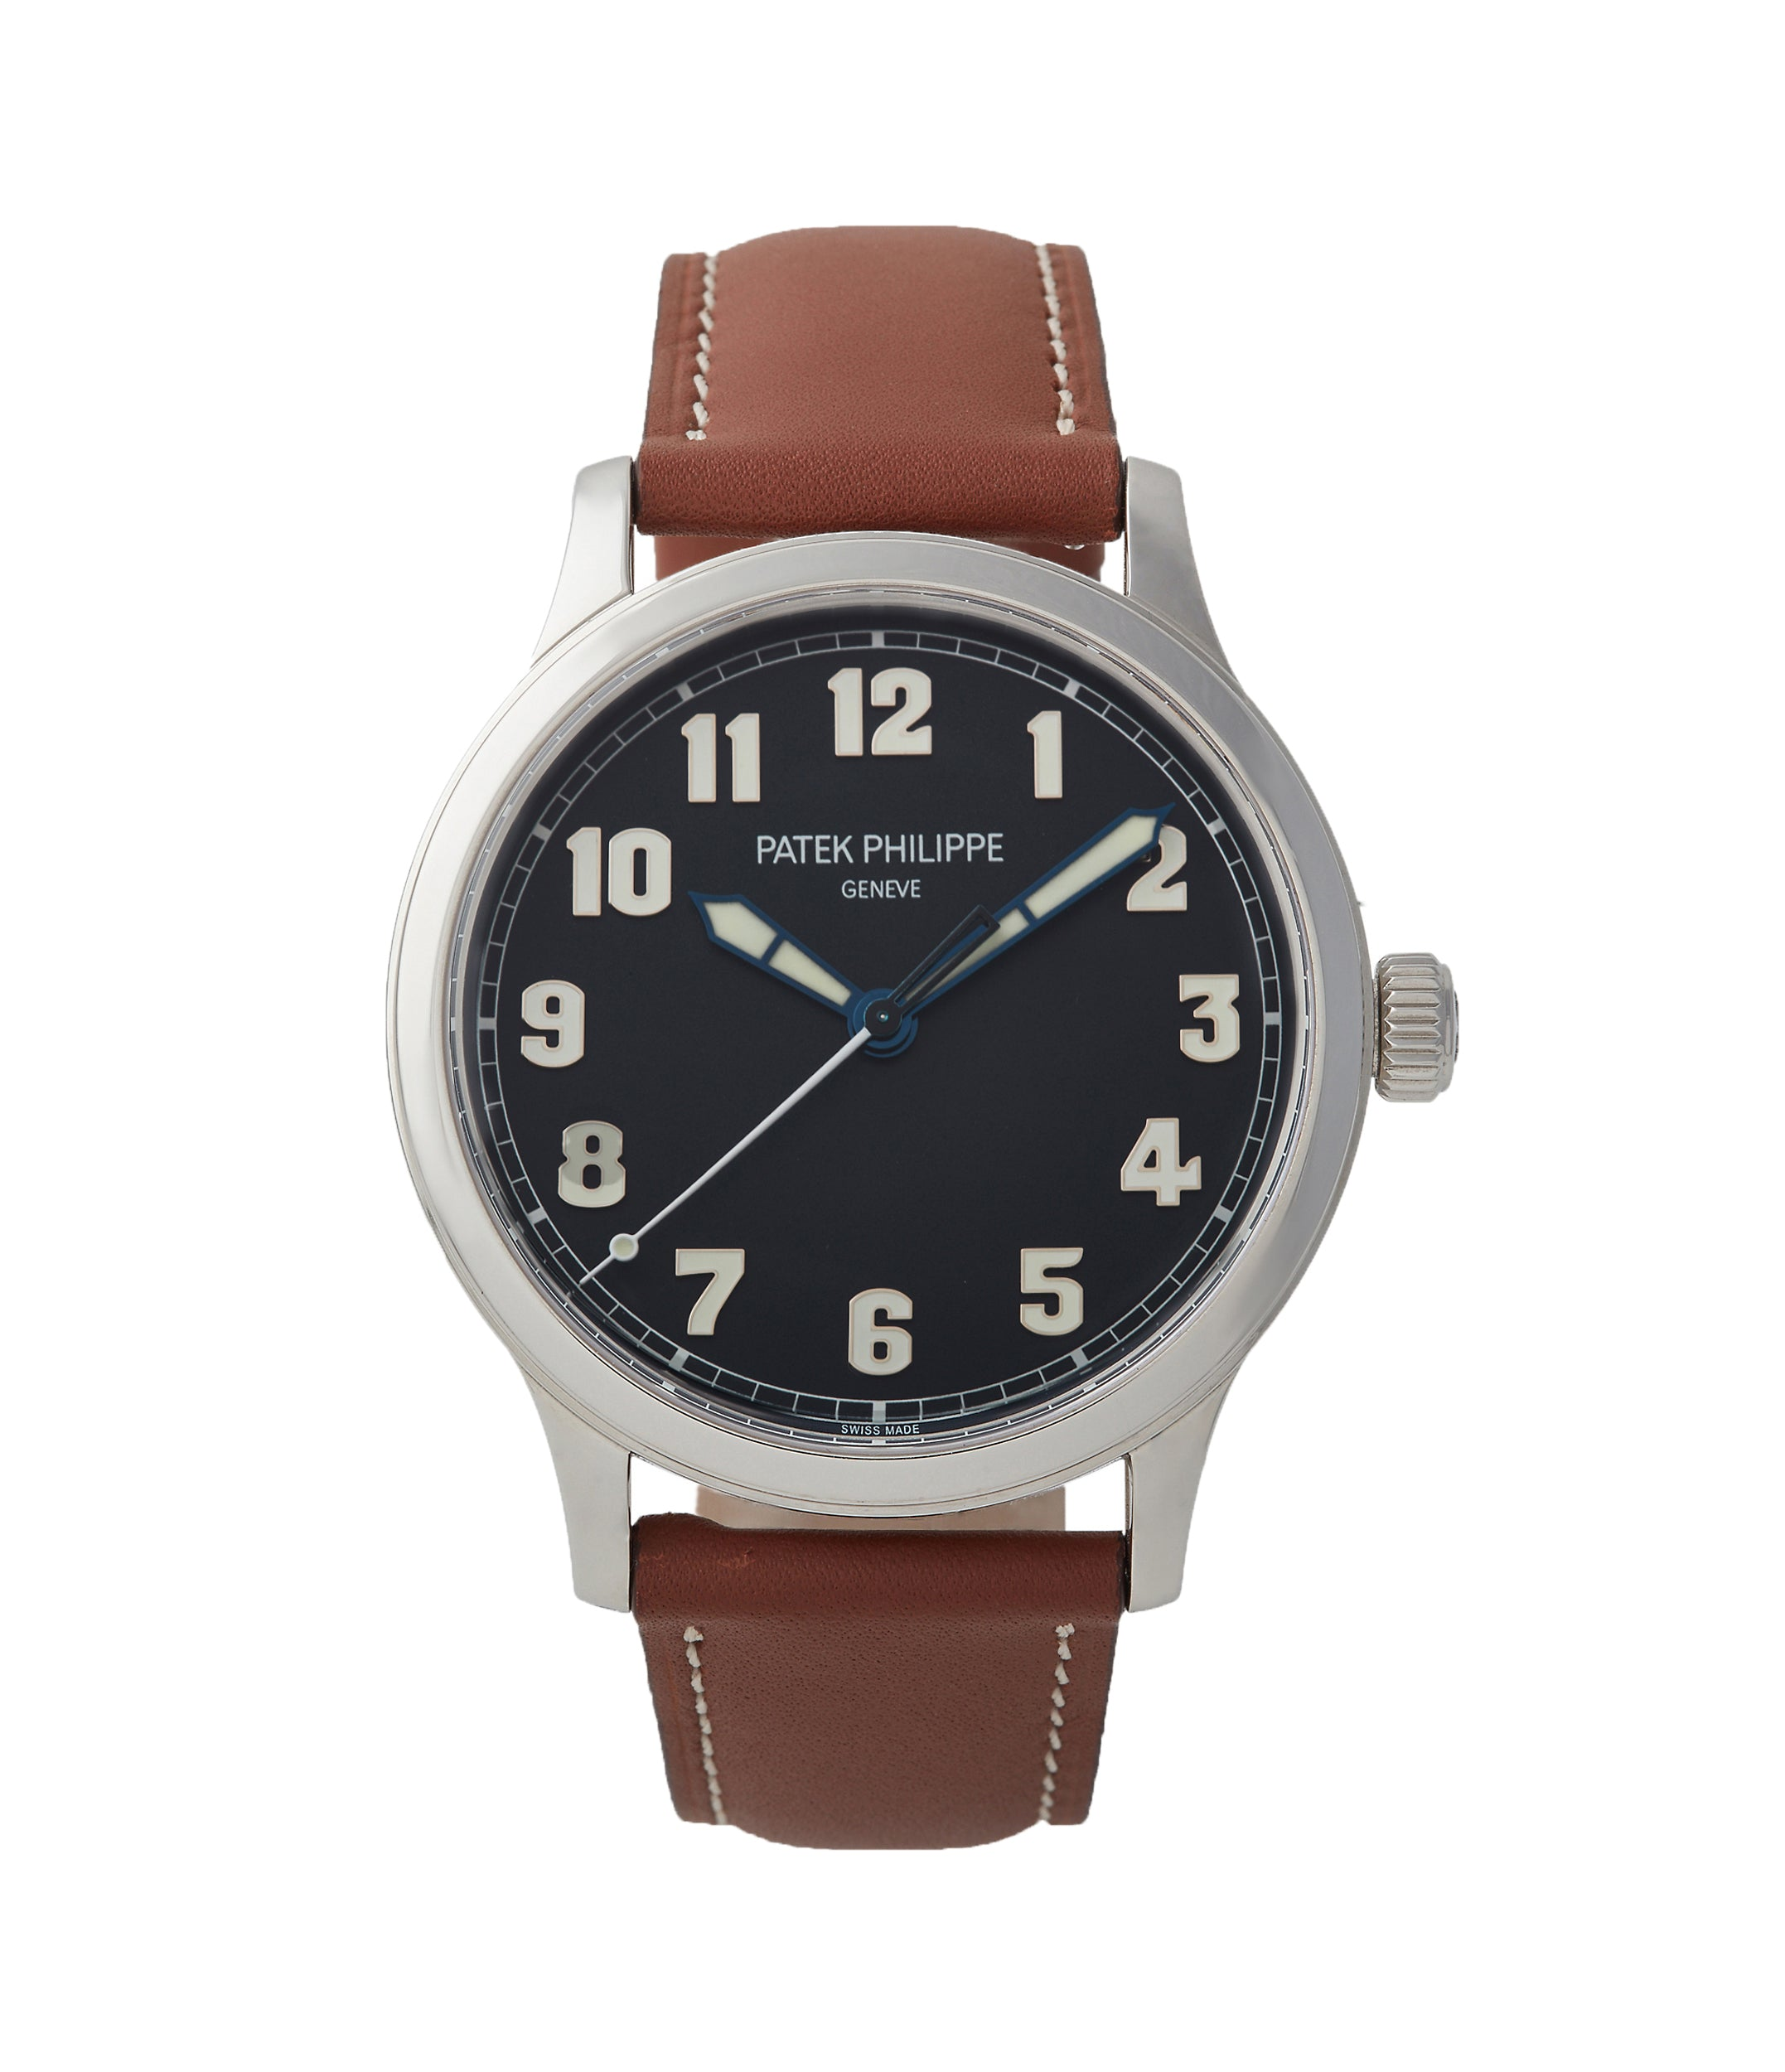 buy Patek Philippe Calatrava Pilot's 5522A-001 time-only pre-owned watch for sale online at A Collected Man London UK specialist